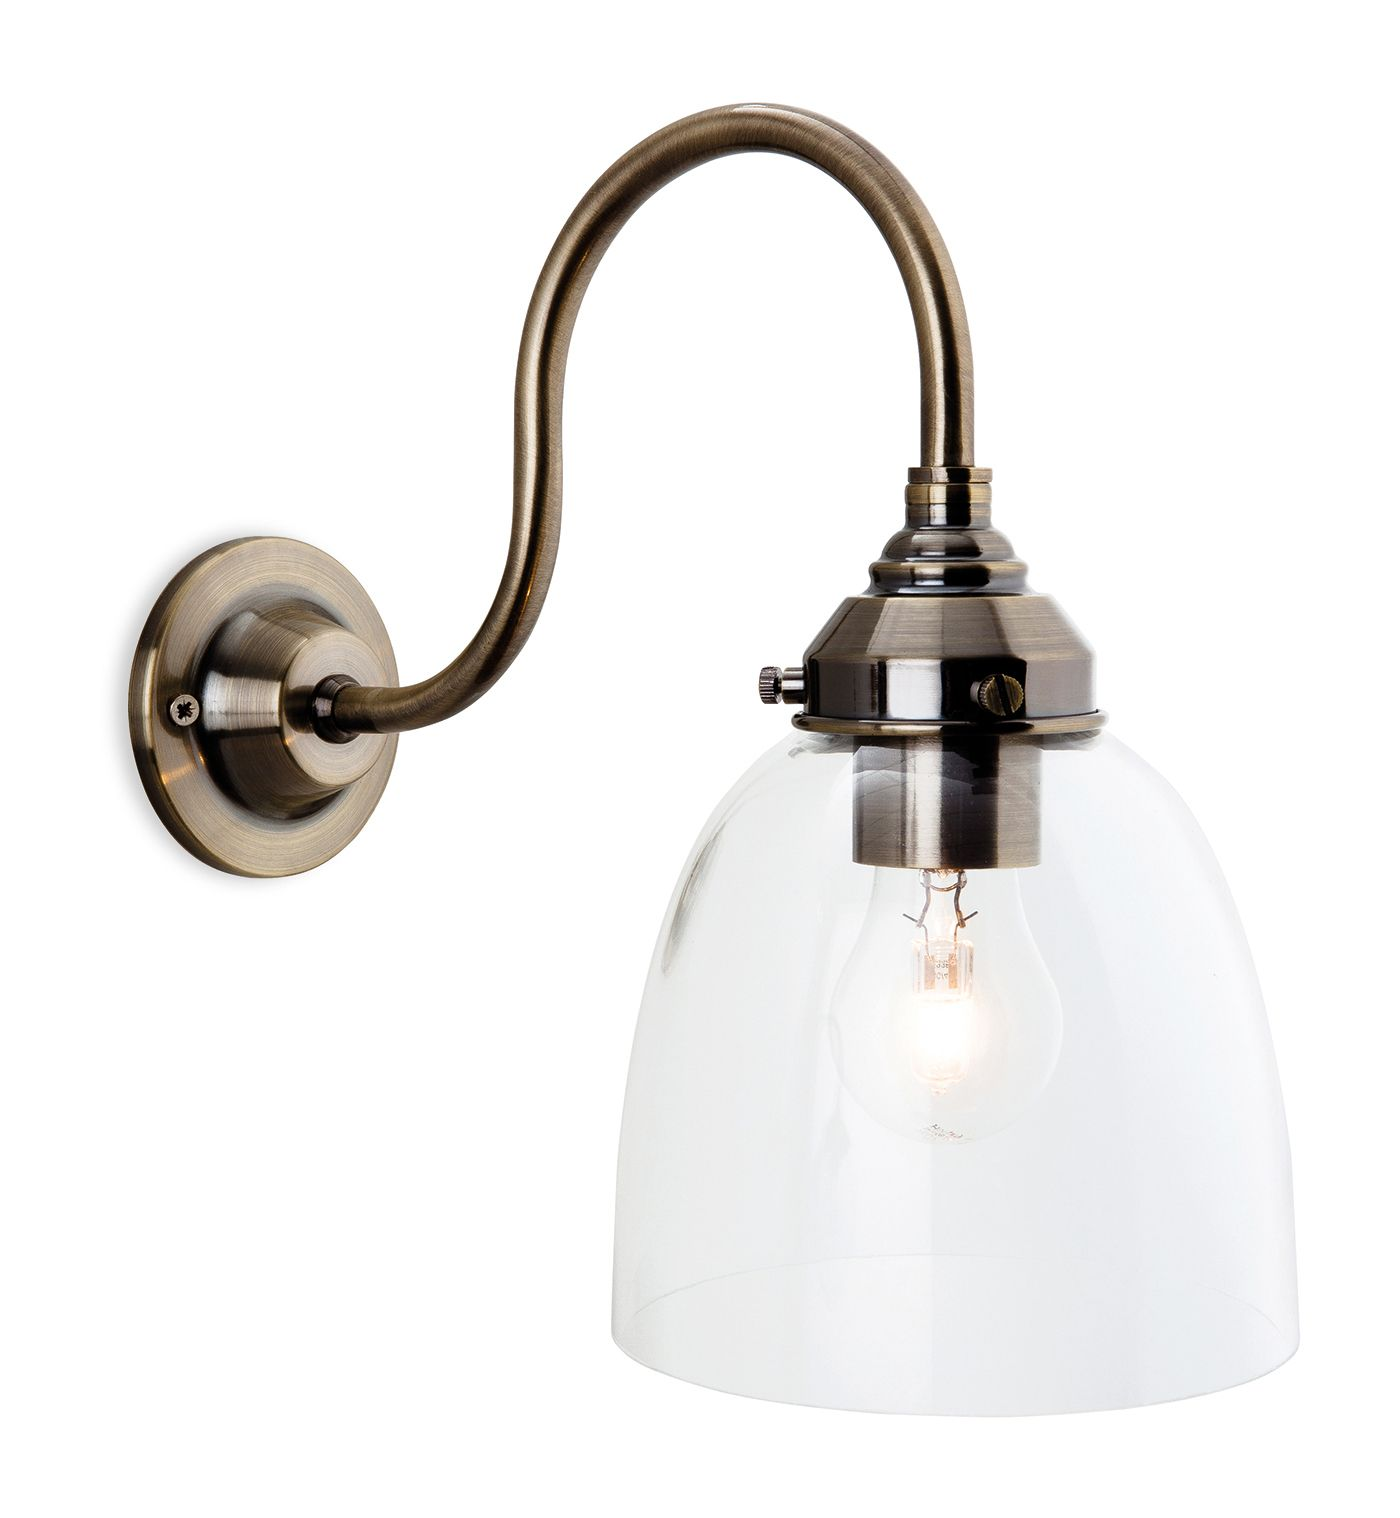 Wall Sconces Victoria Bc: Firstlight Victoria 5935AB Wall Light